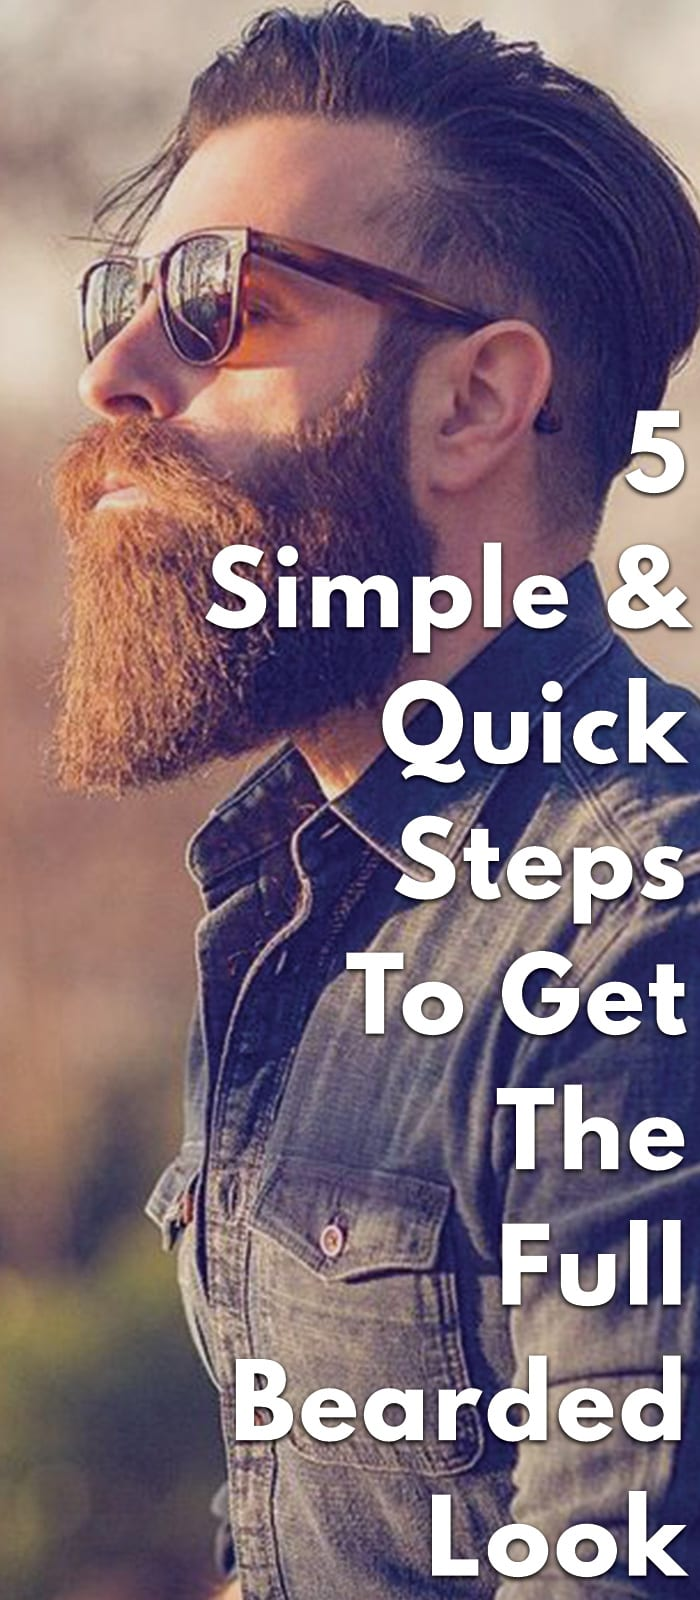 5-Simple-&-Quick-Steps-To-Get-The-Full-Bearded-Look